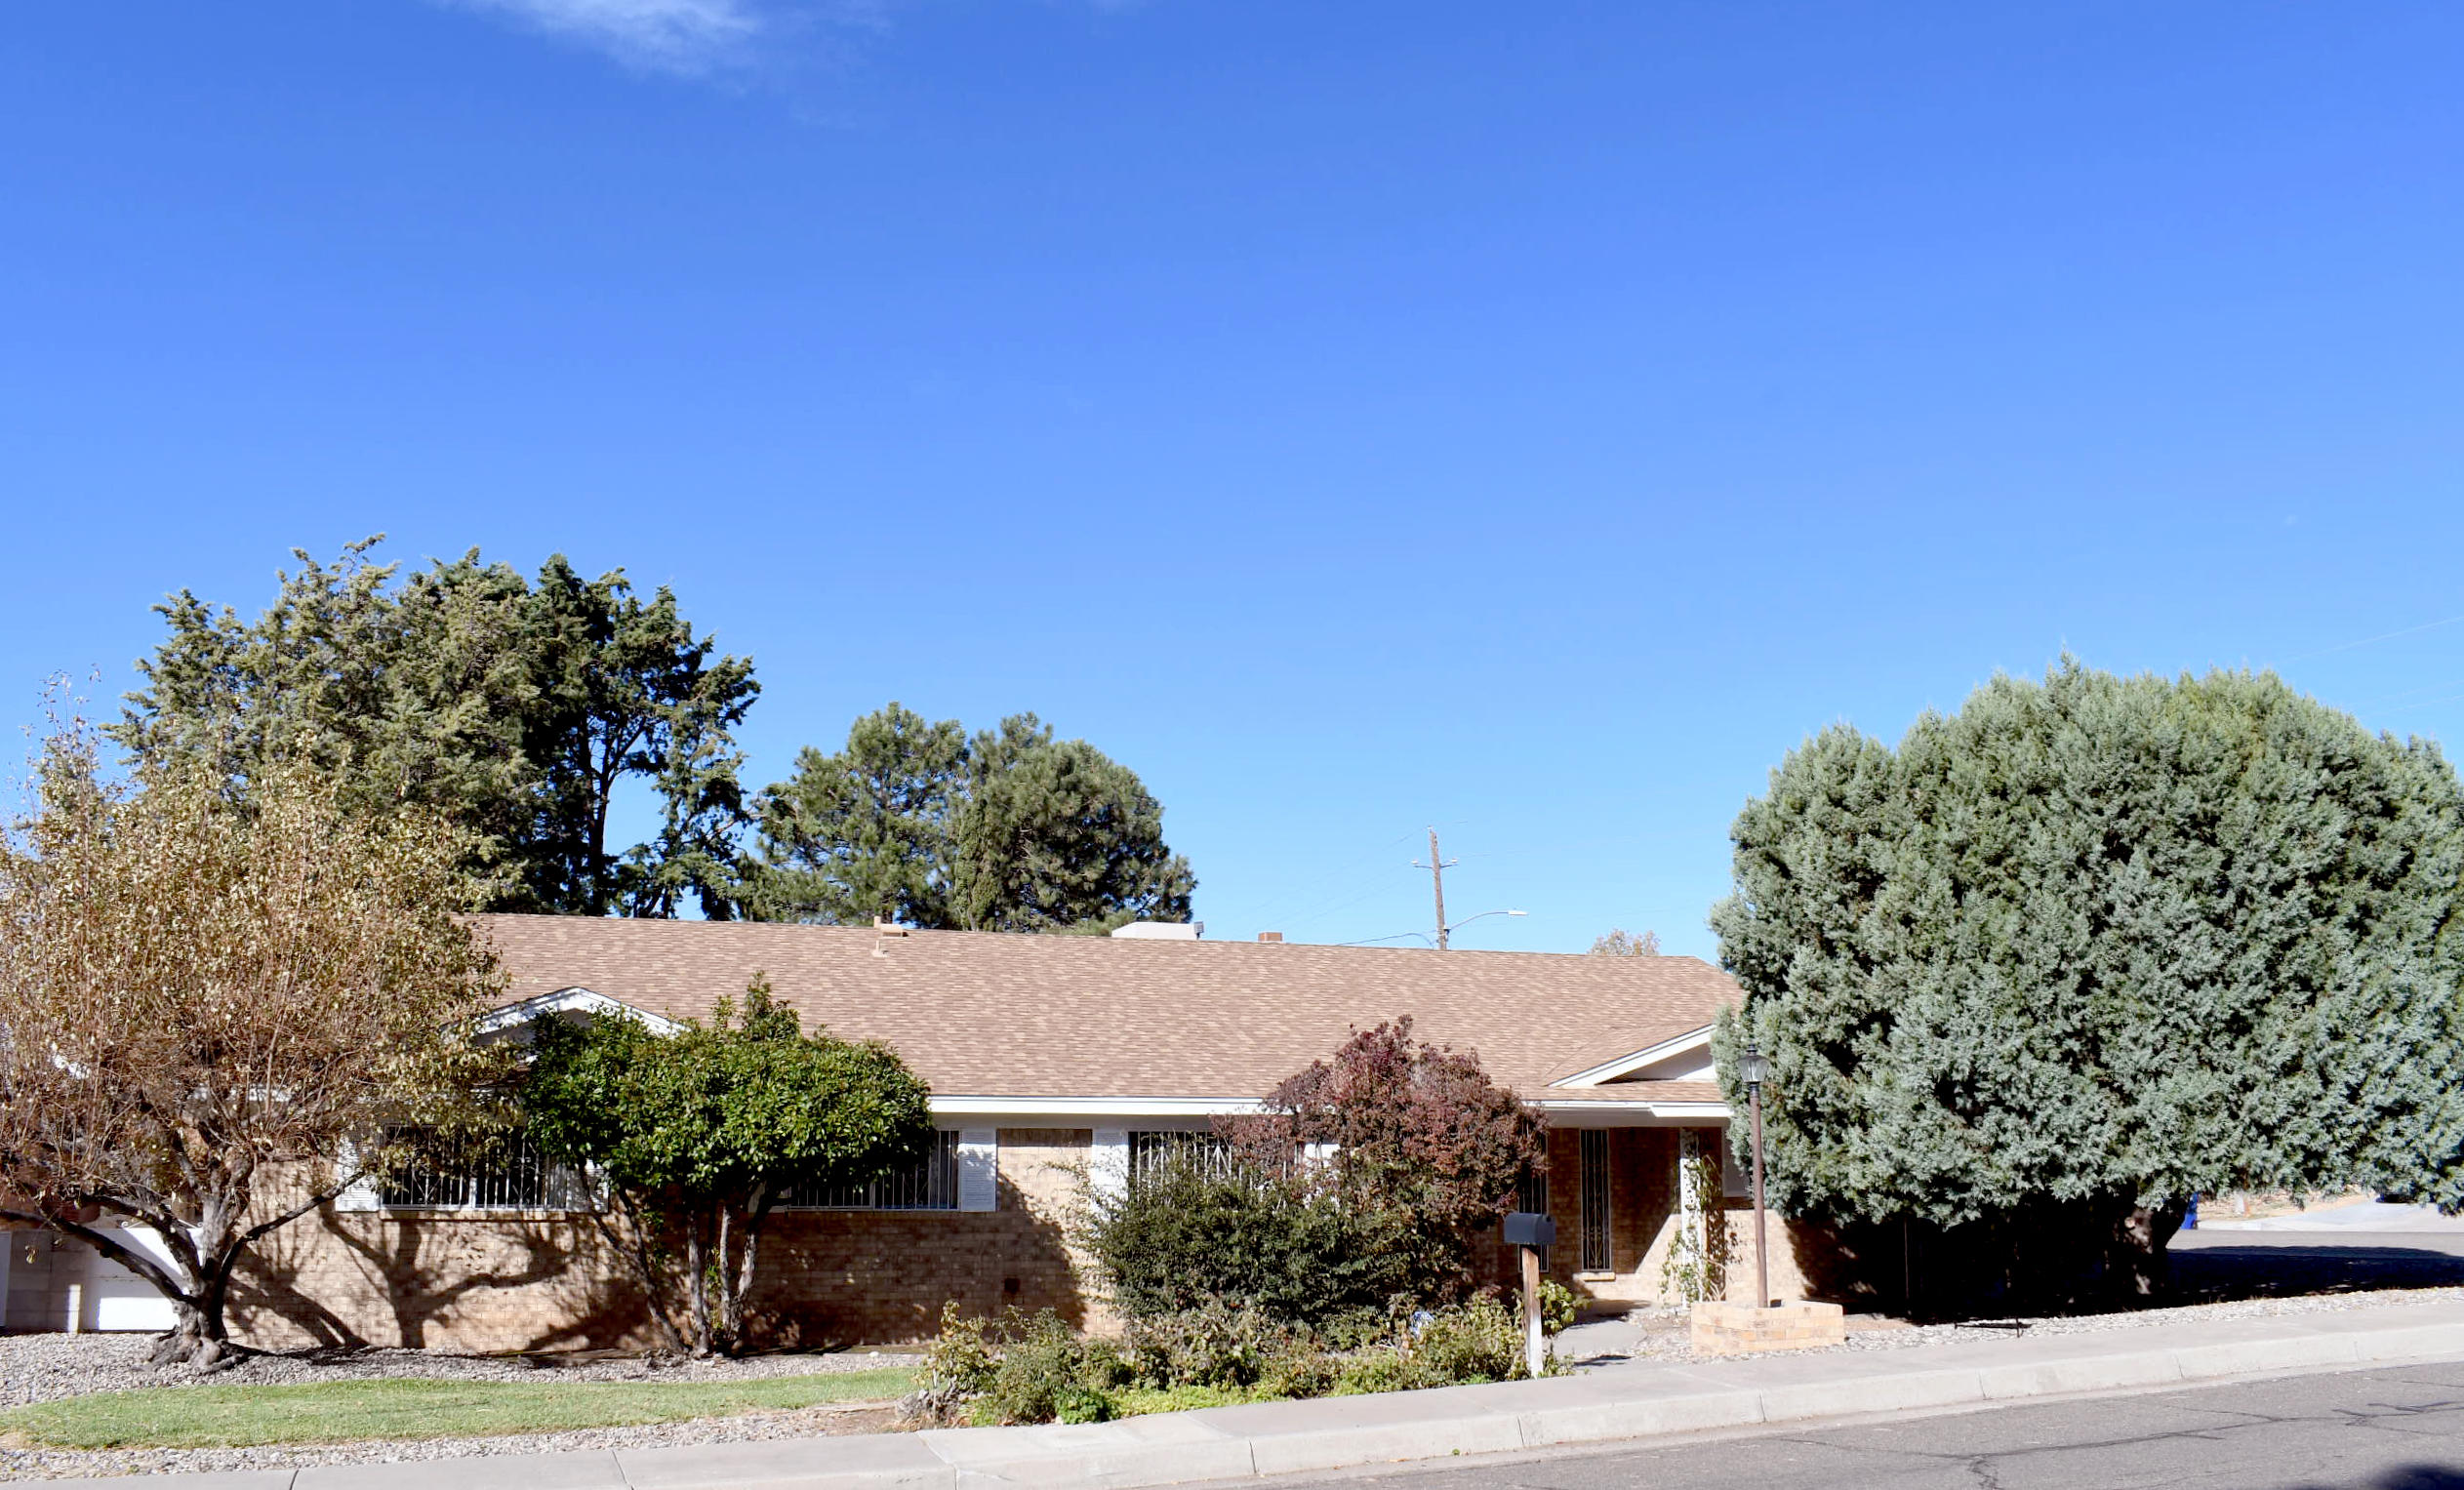 Centrally-located and sitting on a beautifully landscaped corner lot, this charming  custom-built home offers a flowing, functional floor plan perfect for family living and spending time with friends.  Featuring a formal living room, dining room with built-in hutch, breakfast room, large paneled family room with built-in bookcases and cozy fireplace.  Storage galore throughout the home.   Four generous sized bedrooms, three of which have walk-in closets.  The master suite has a separate bath, large private shower, and a sit-down vanity.  The kitchen flows into the breakfast room.  Oversized utility room with folding area, storage, and .50 guest bath.  Finished, oversized two-car garage.  Enjoy outdoor living with rear covered patio, fruit trees, grape arbor, shade trees, bushes and roses.